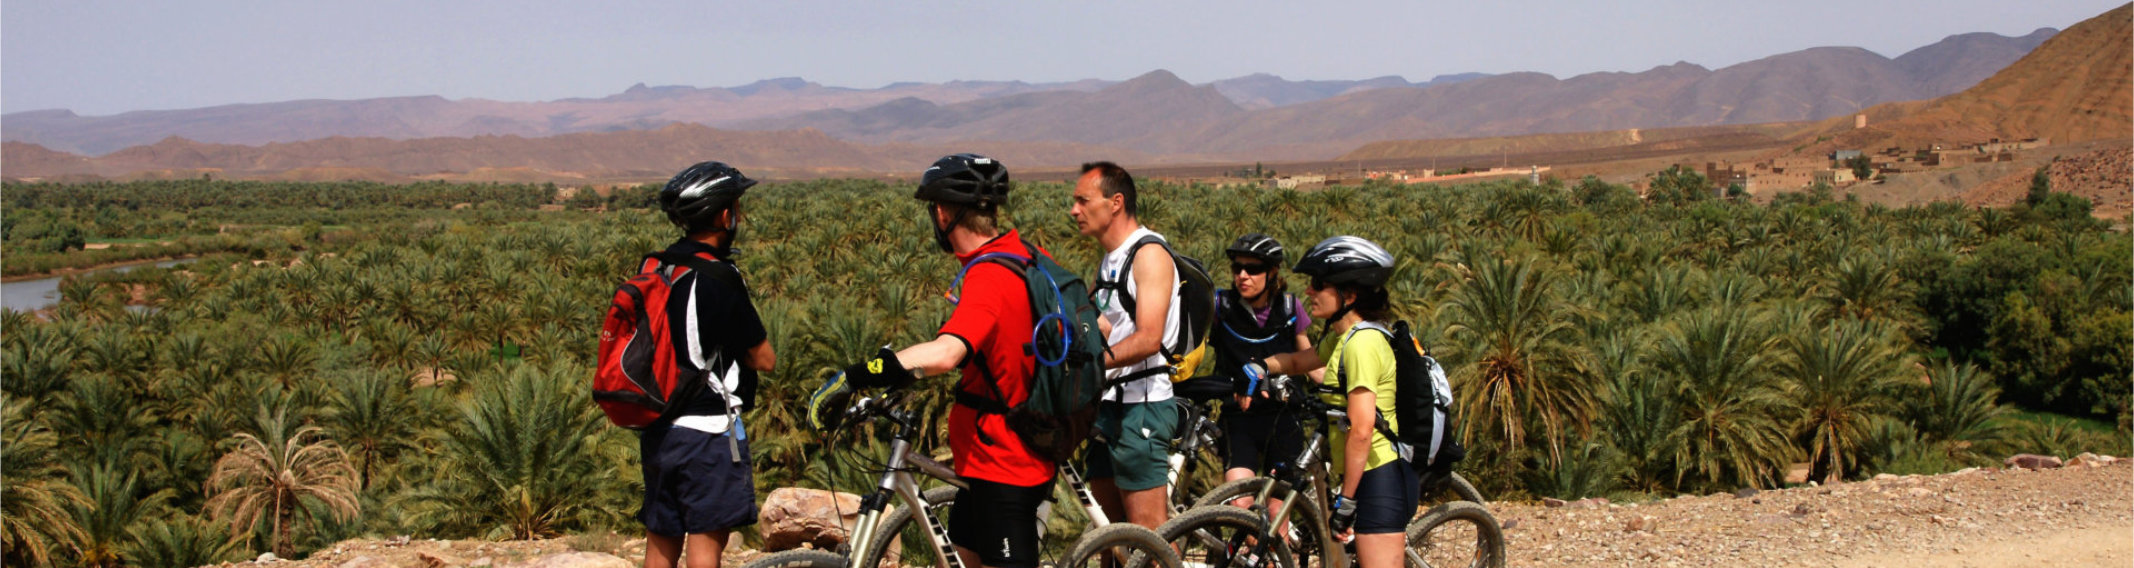 Why Ride in Morocco?